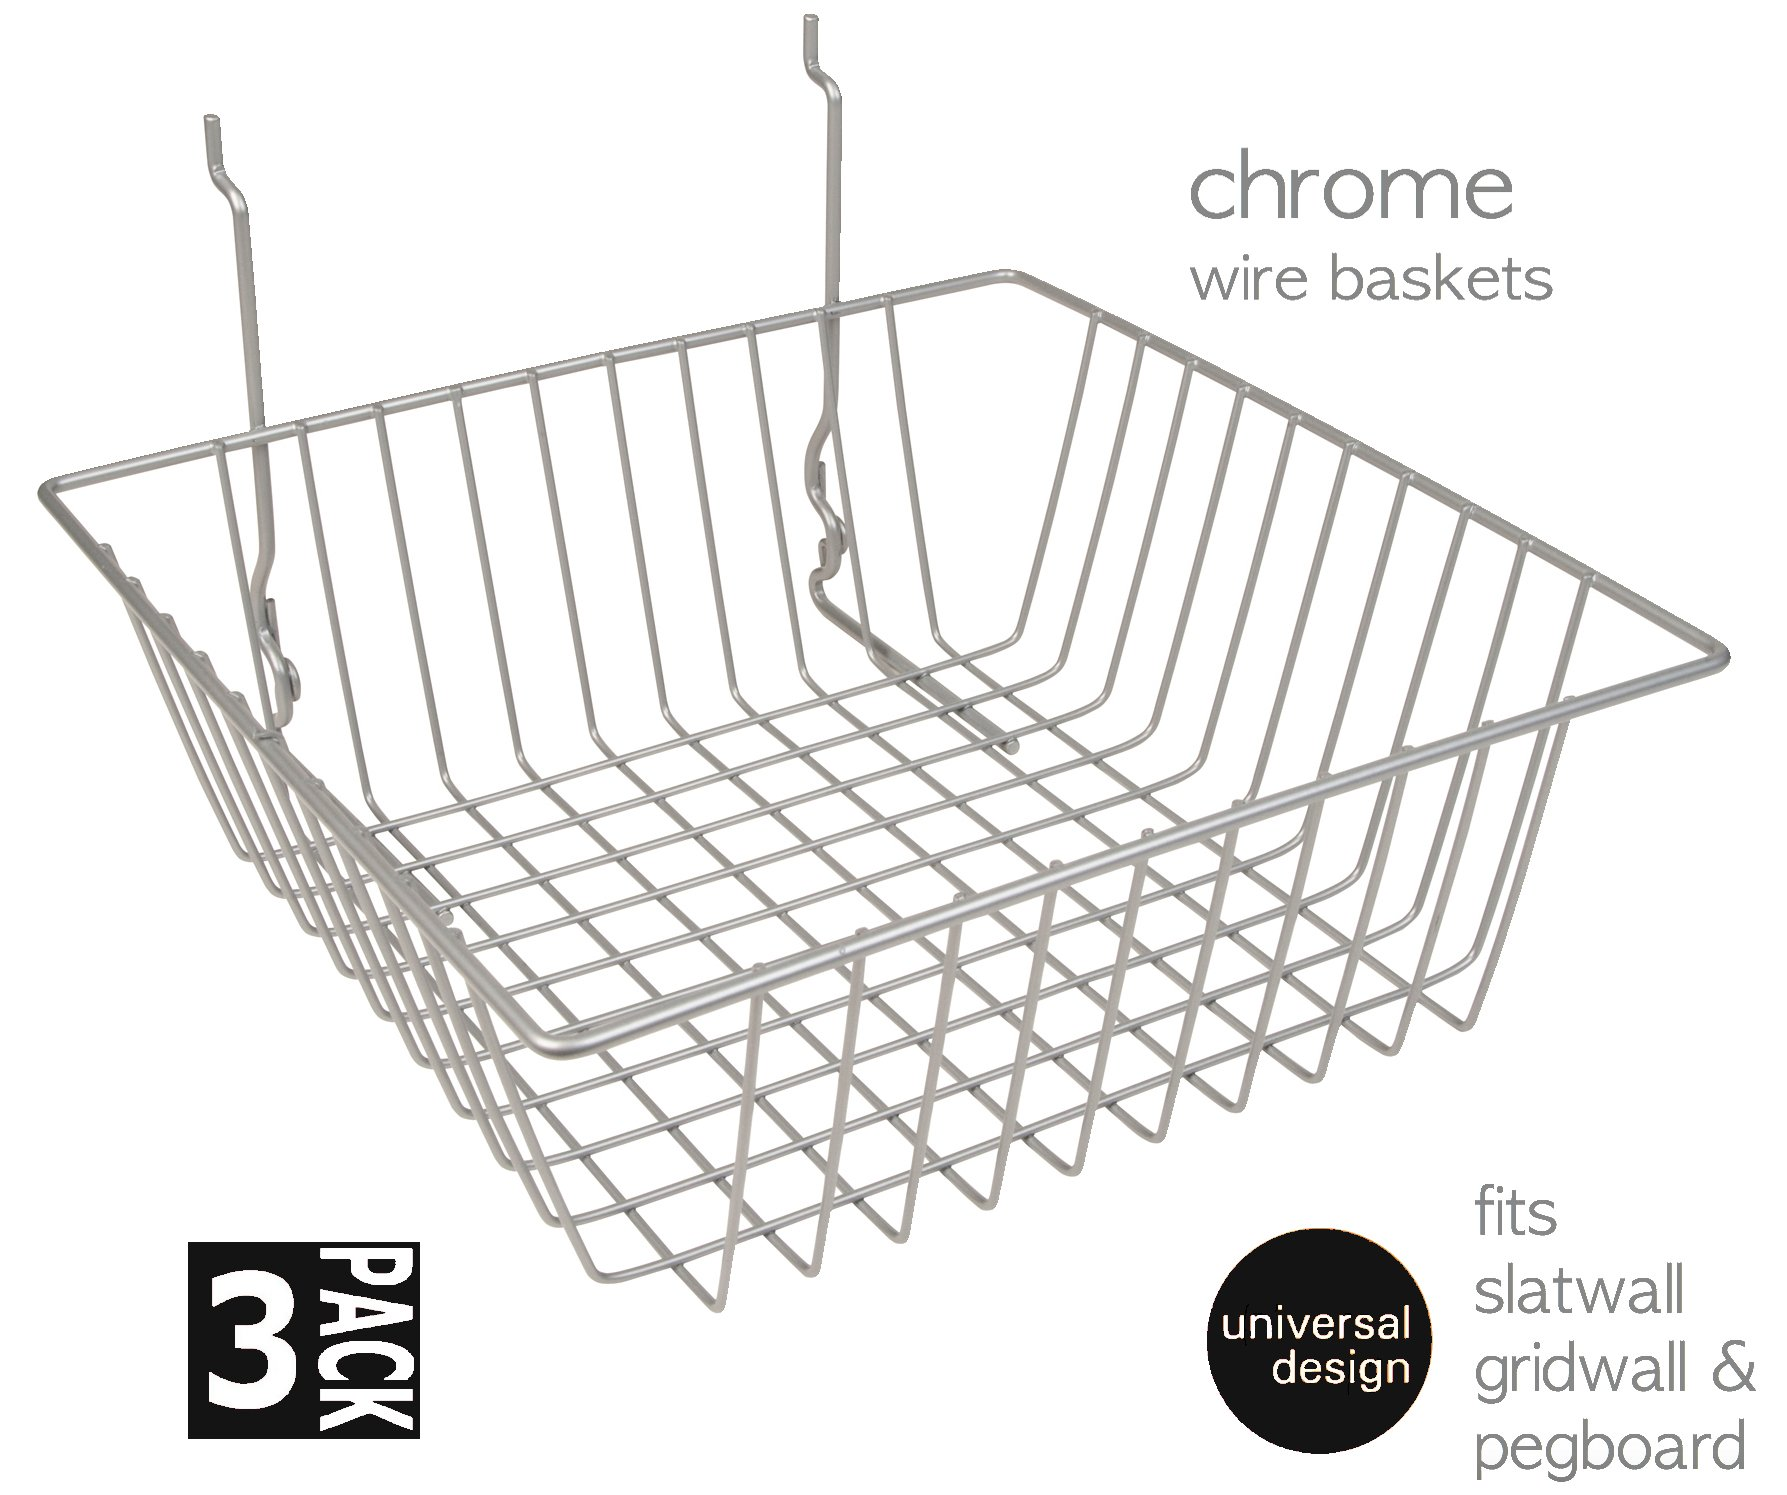 Only Garment Racks #5612C (Pack of 3) Only Garment Racks Chrome Wire Baskets for Gridwall, Slatwall and Pegboard - Chrome Finish - Set of 3